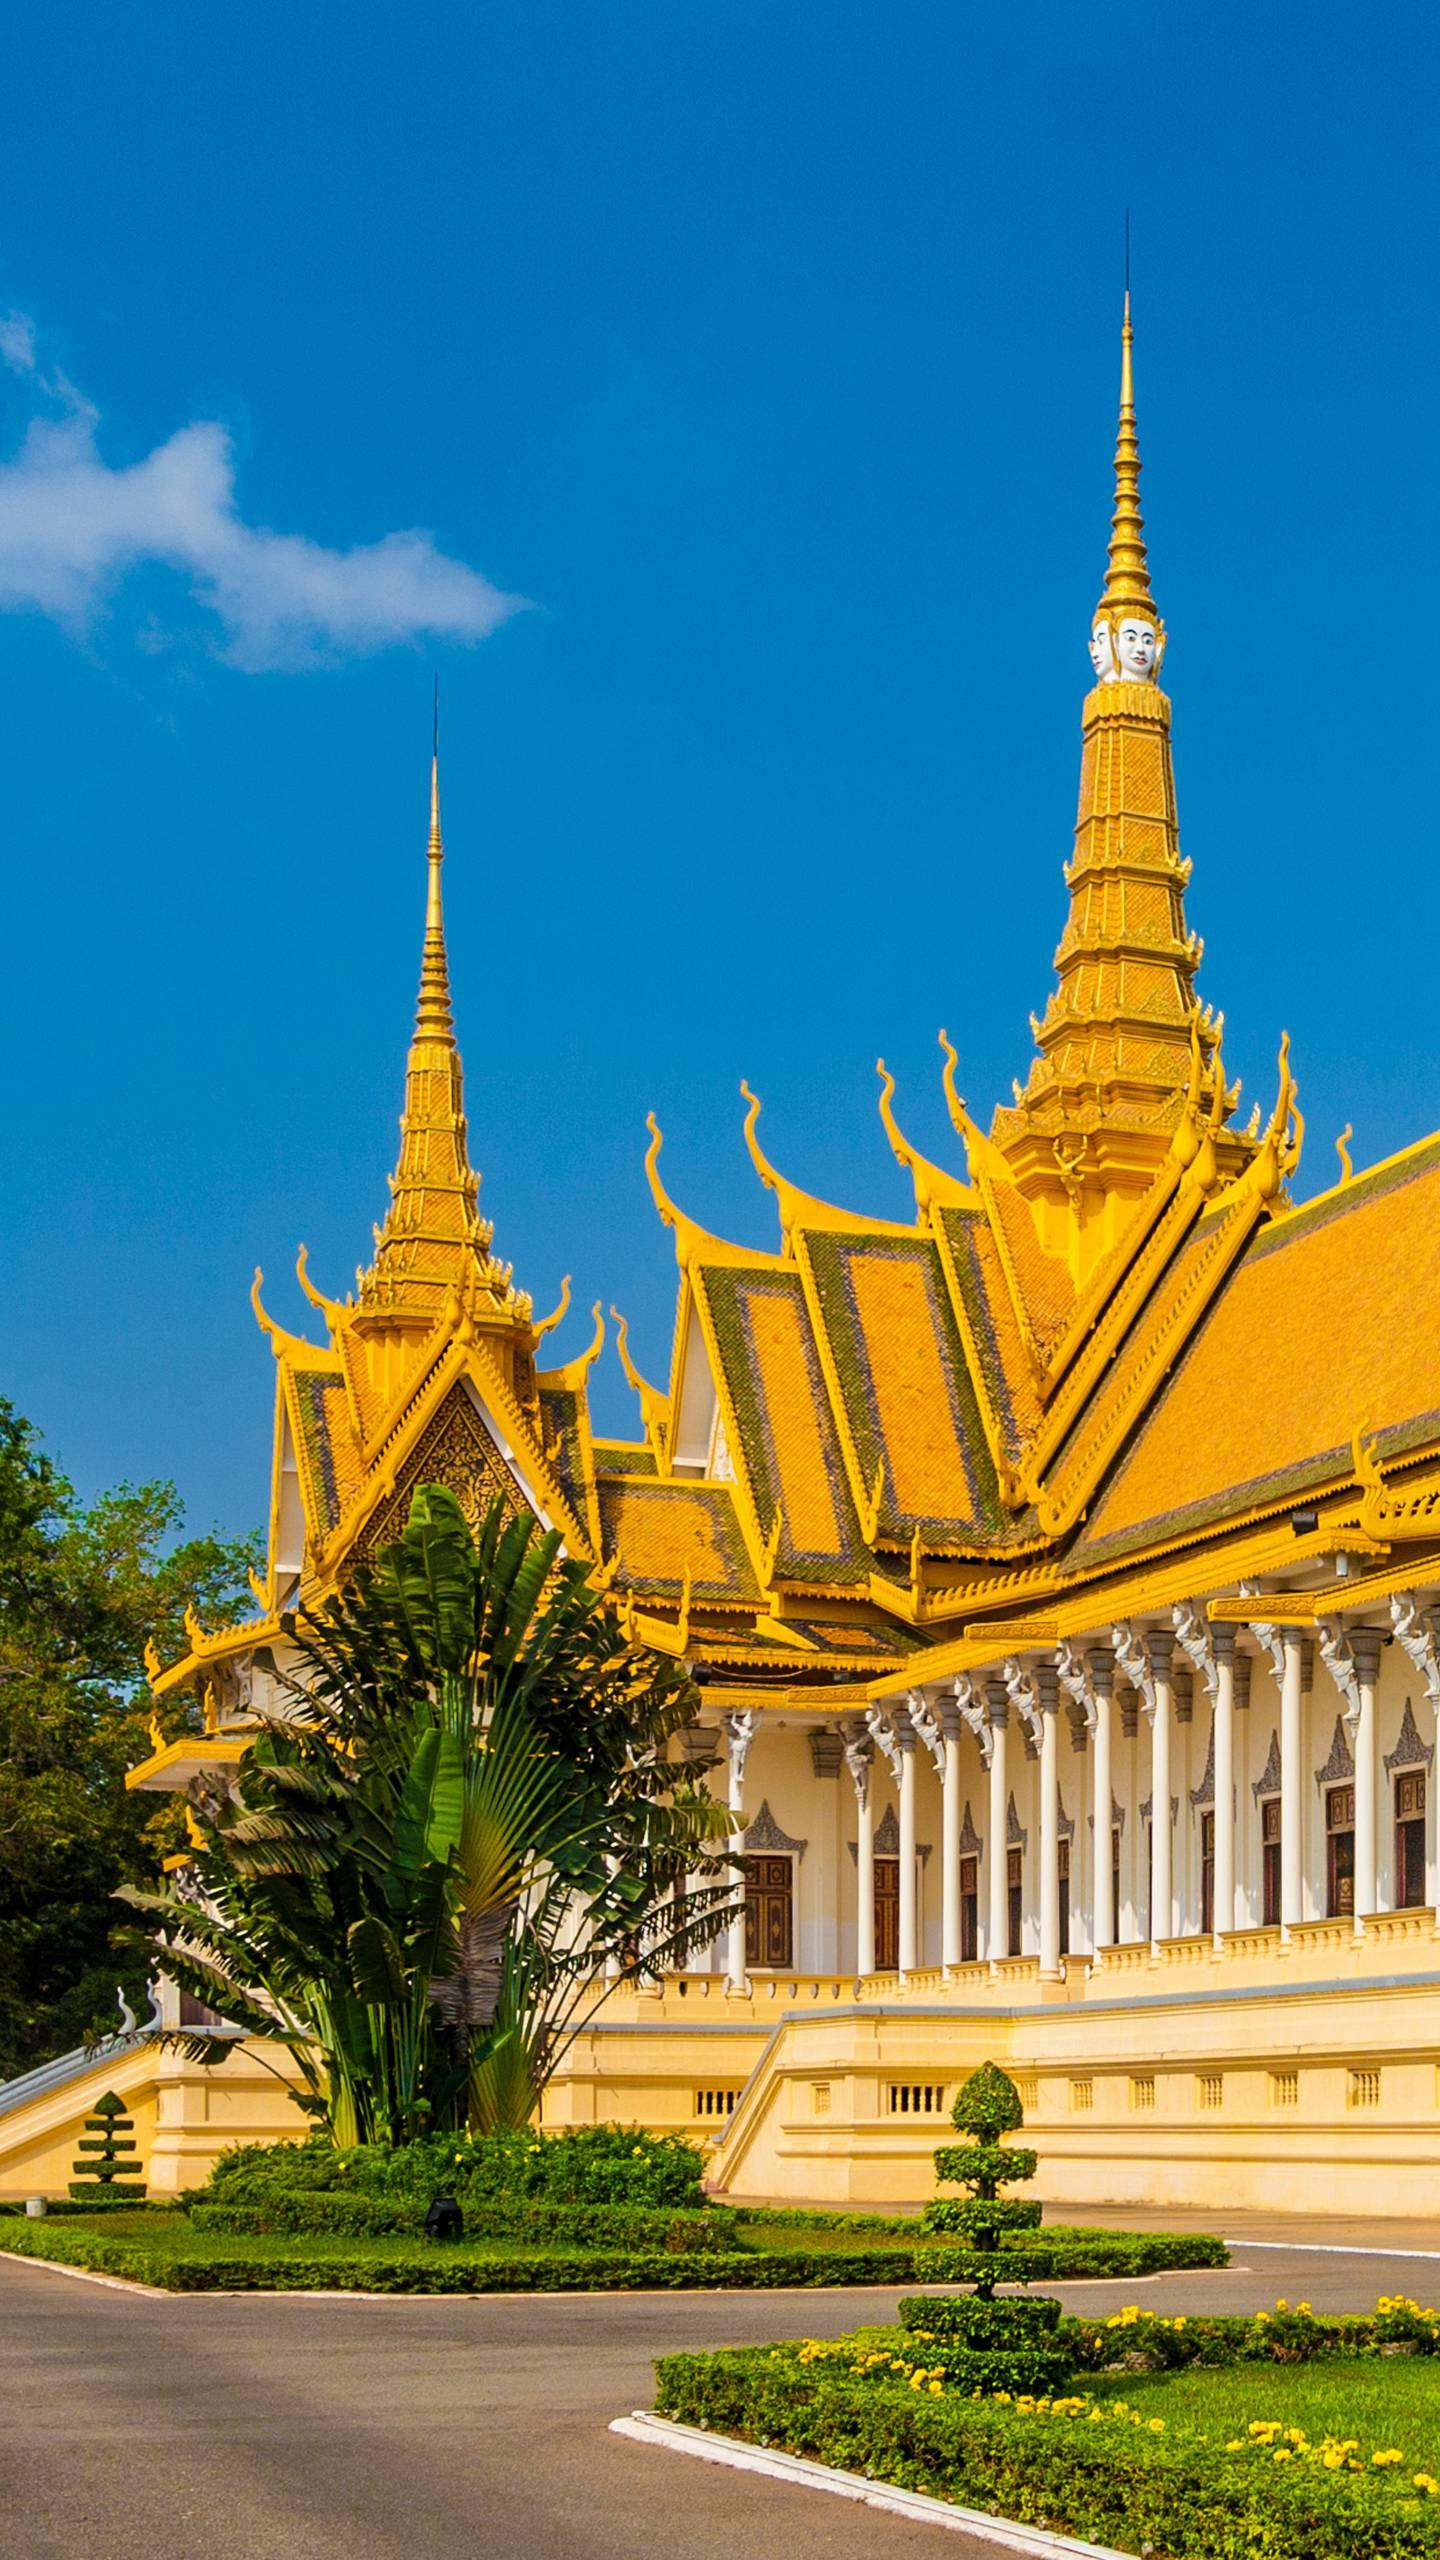 Cambodia - Royal Palace of Phnom Penh. It is the palace of the King of Cambodia. It consists of a group of golden roofs and yellow walls. It is beautifully shaped and magnificent.